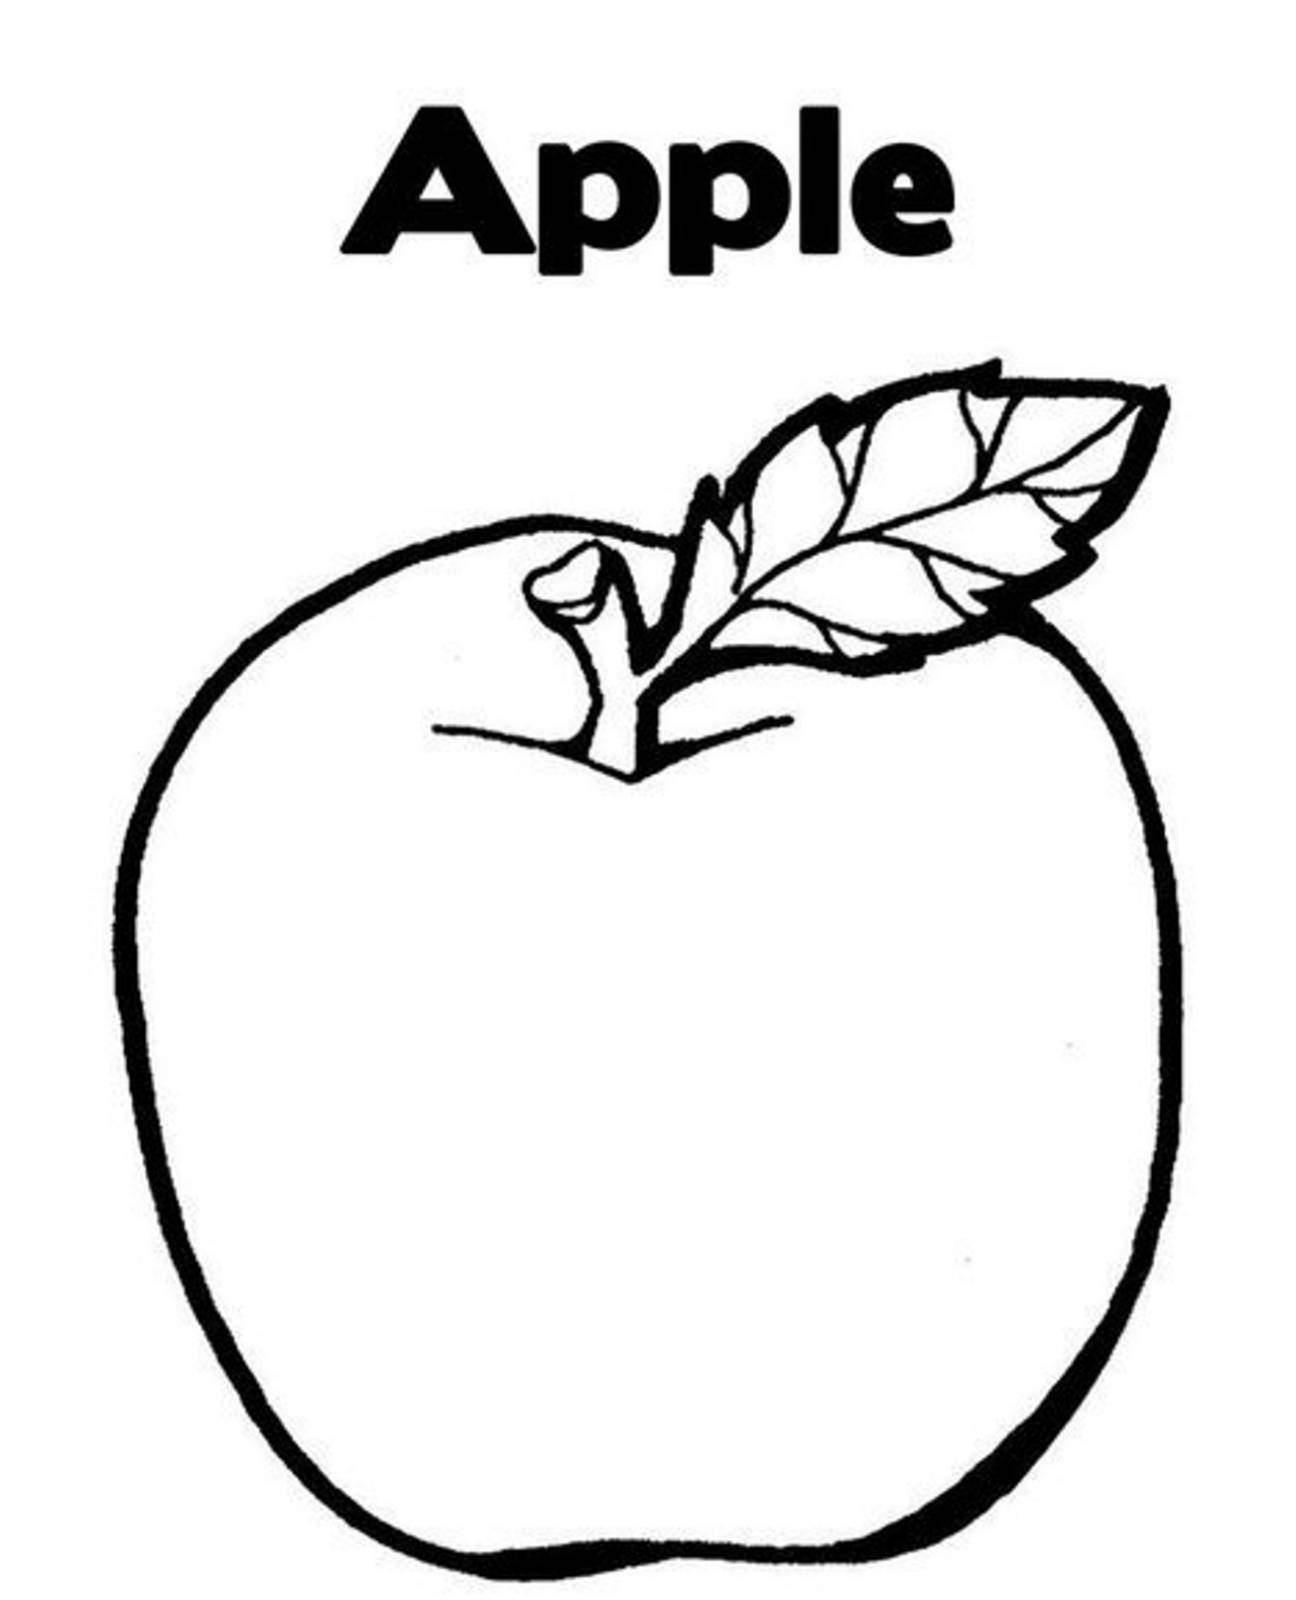 apple dumplin coloring page free printable coloring pages - HD 1296×1600